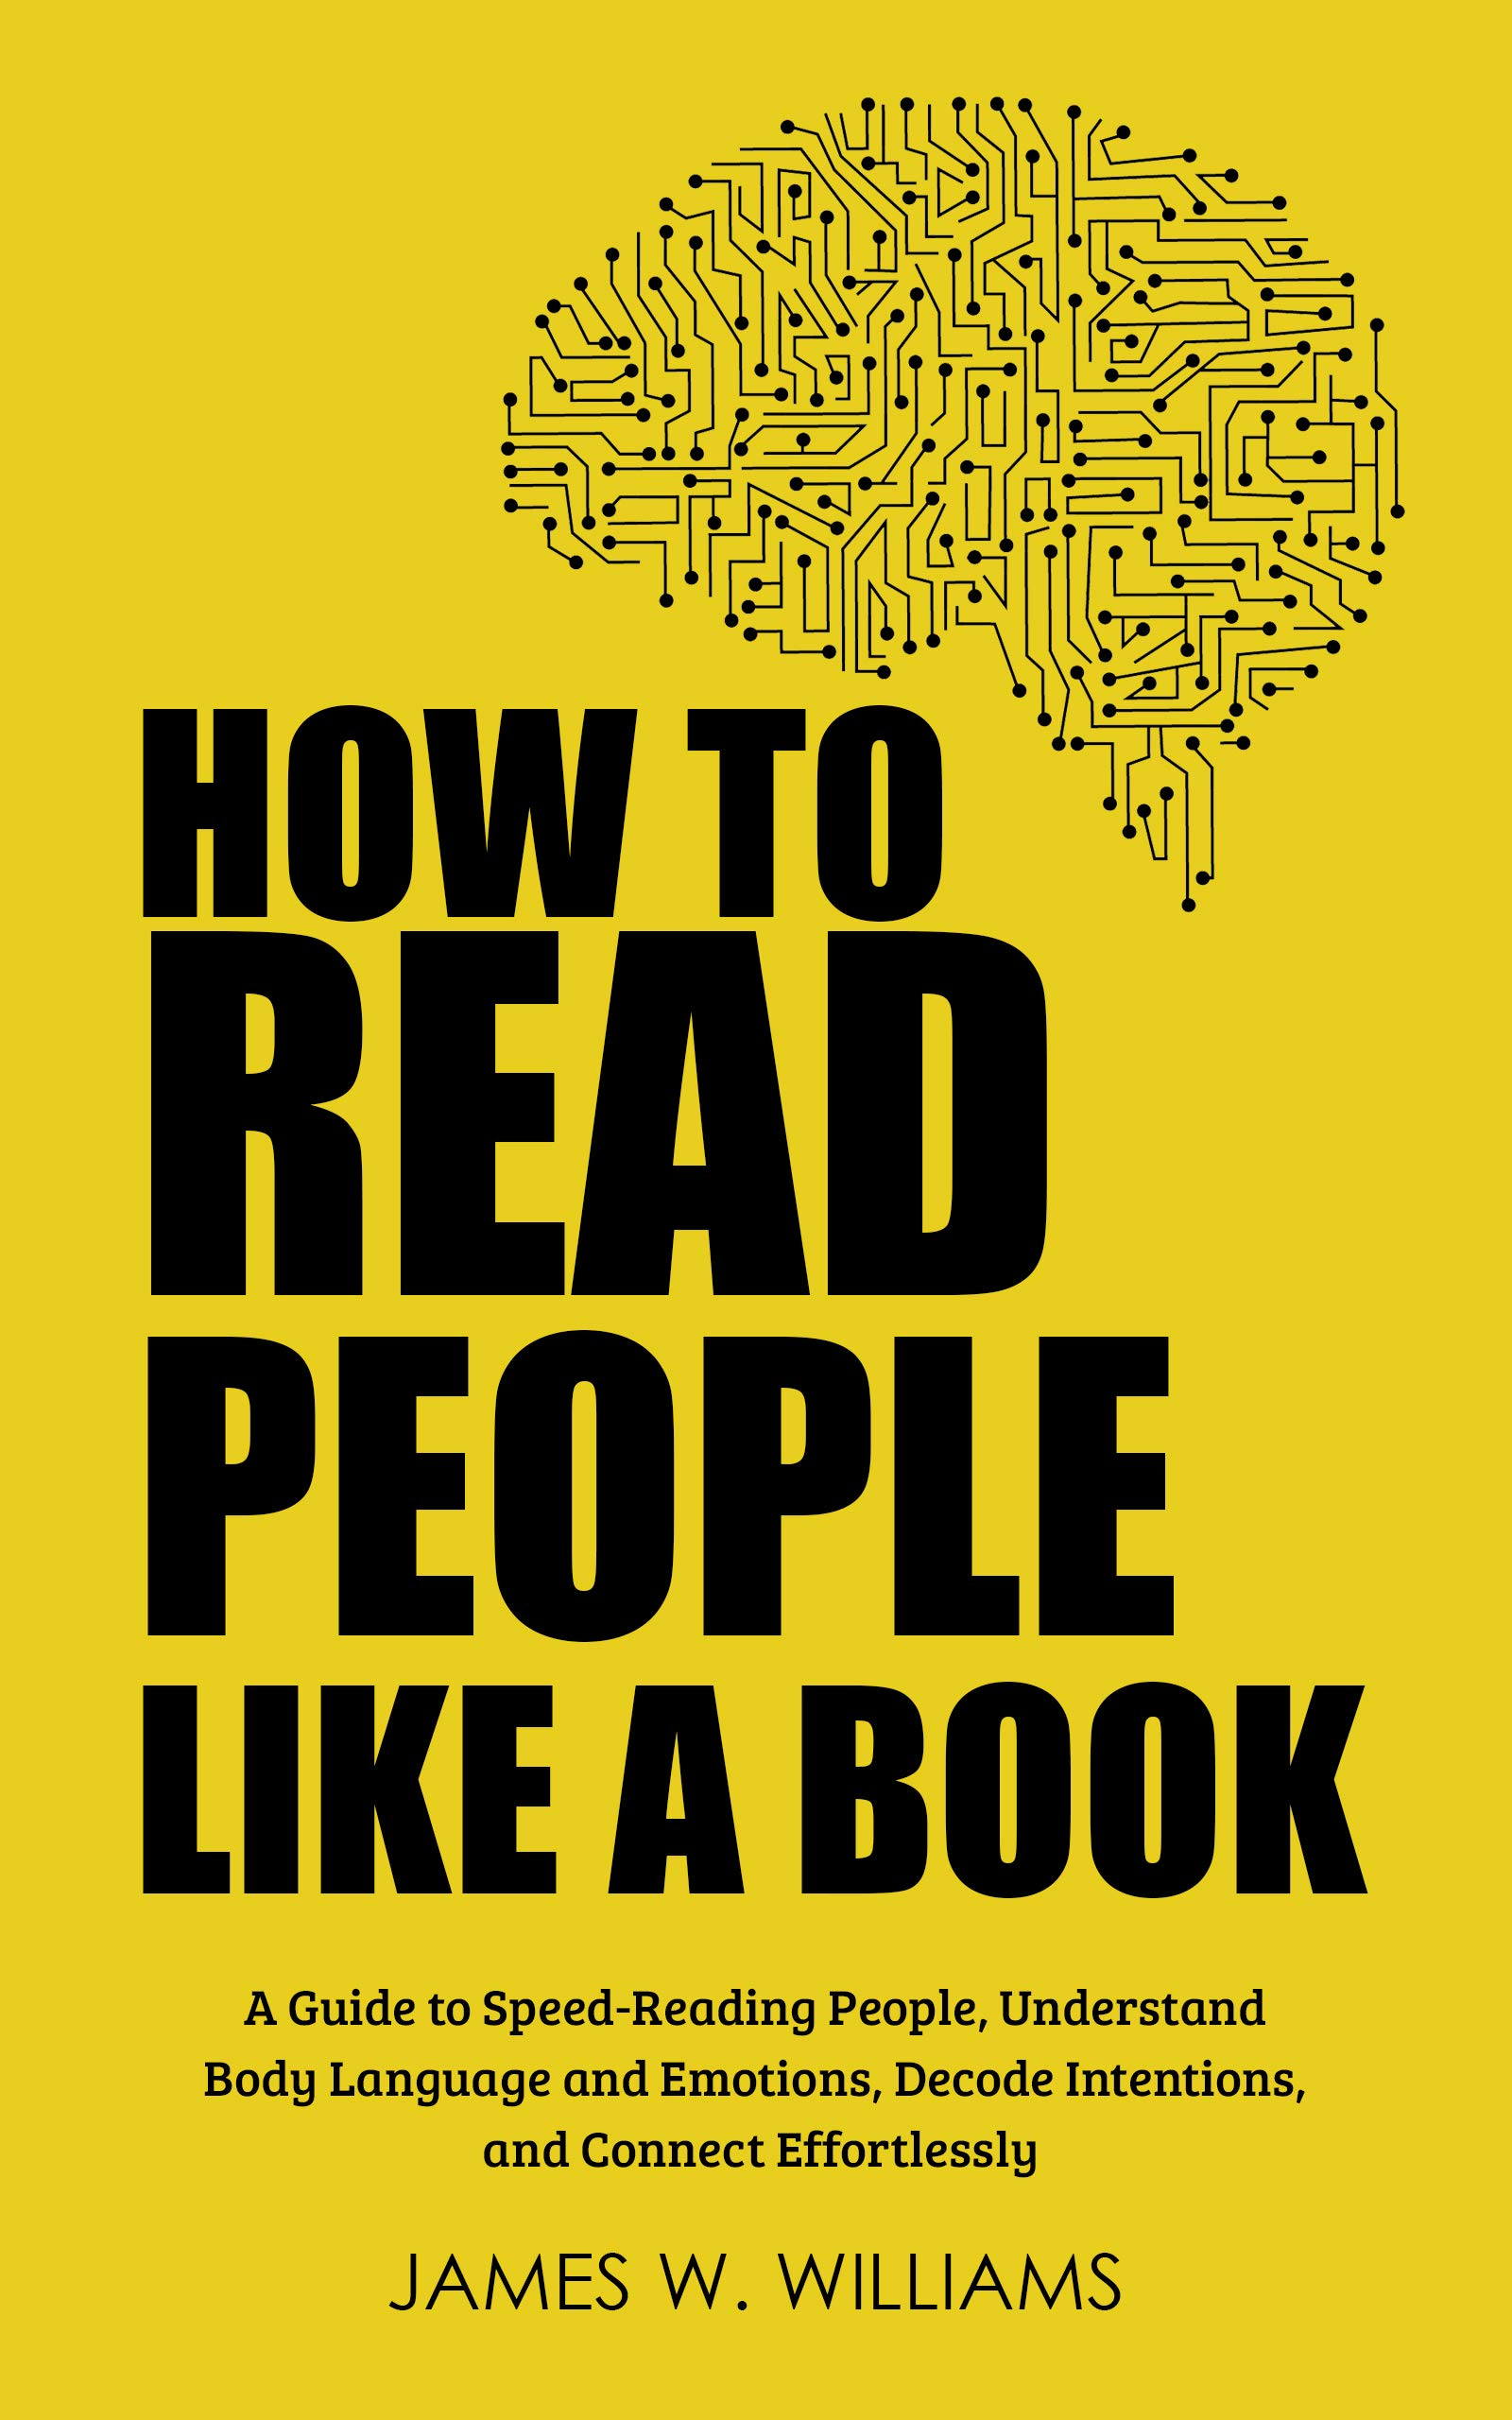 How to Read People Like a Book: A Guide to Speed-Reading People, Understand Body Language and Emotions, Decode Intentions, and Connect Effortlessly (Communication Skills Training Book 2)